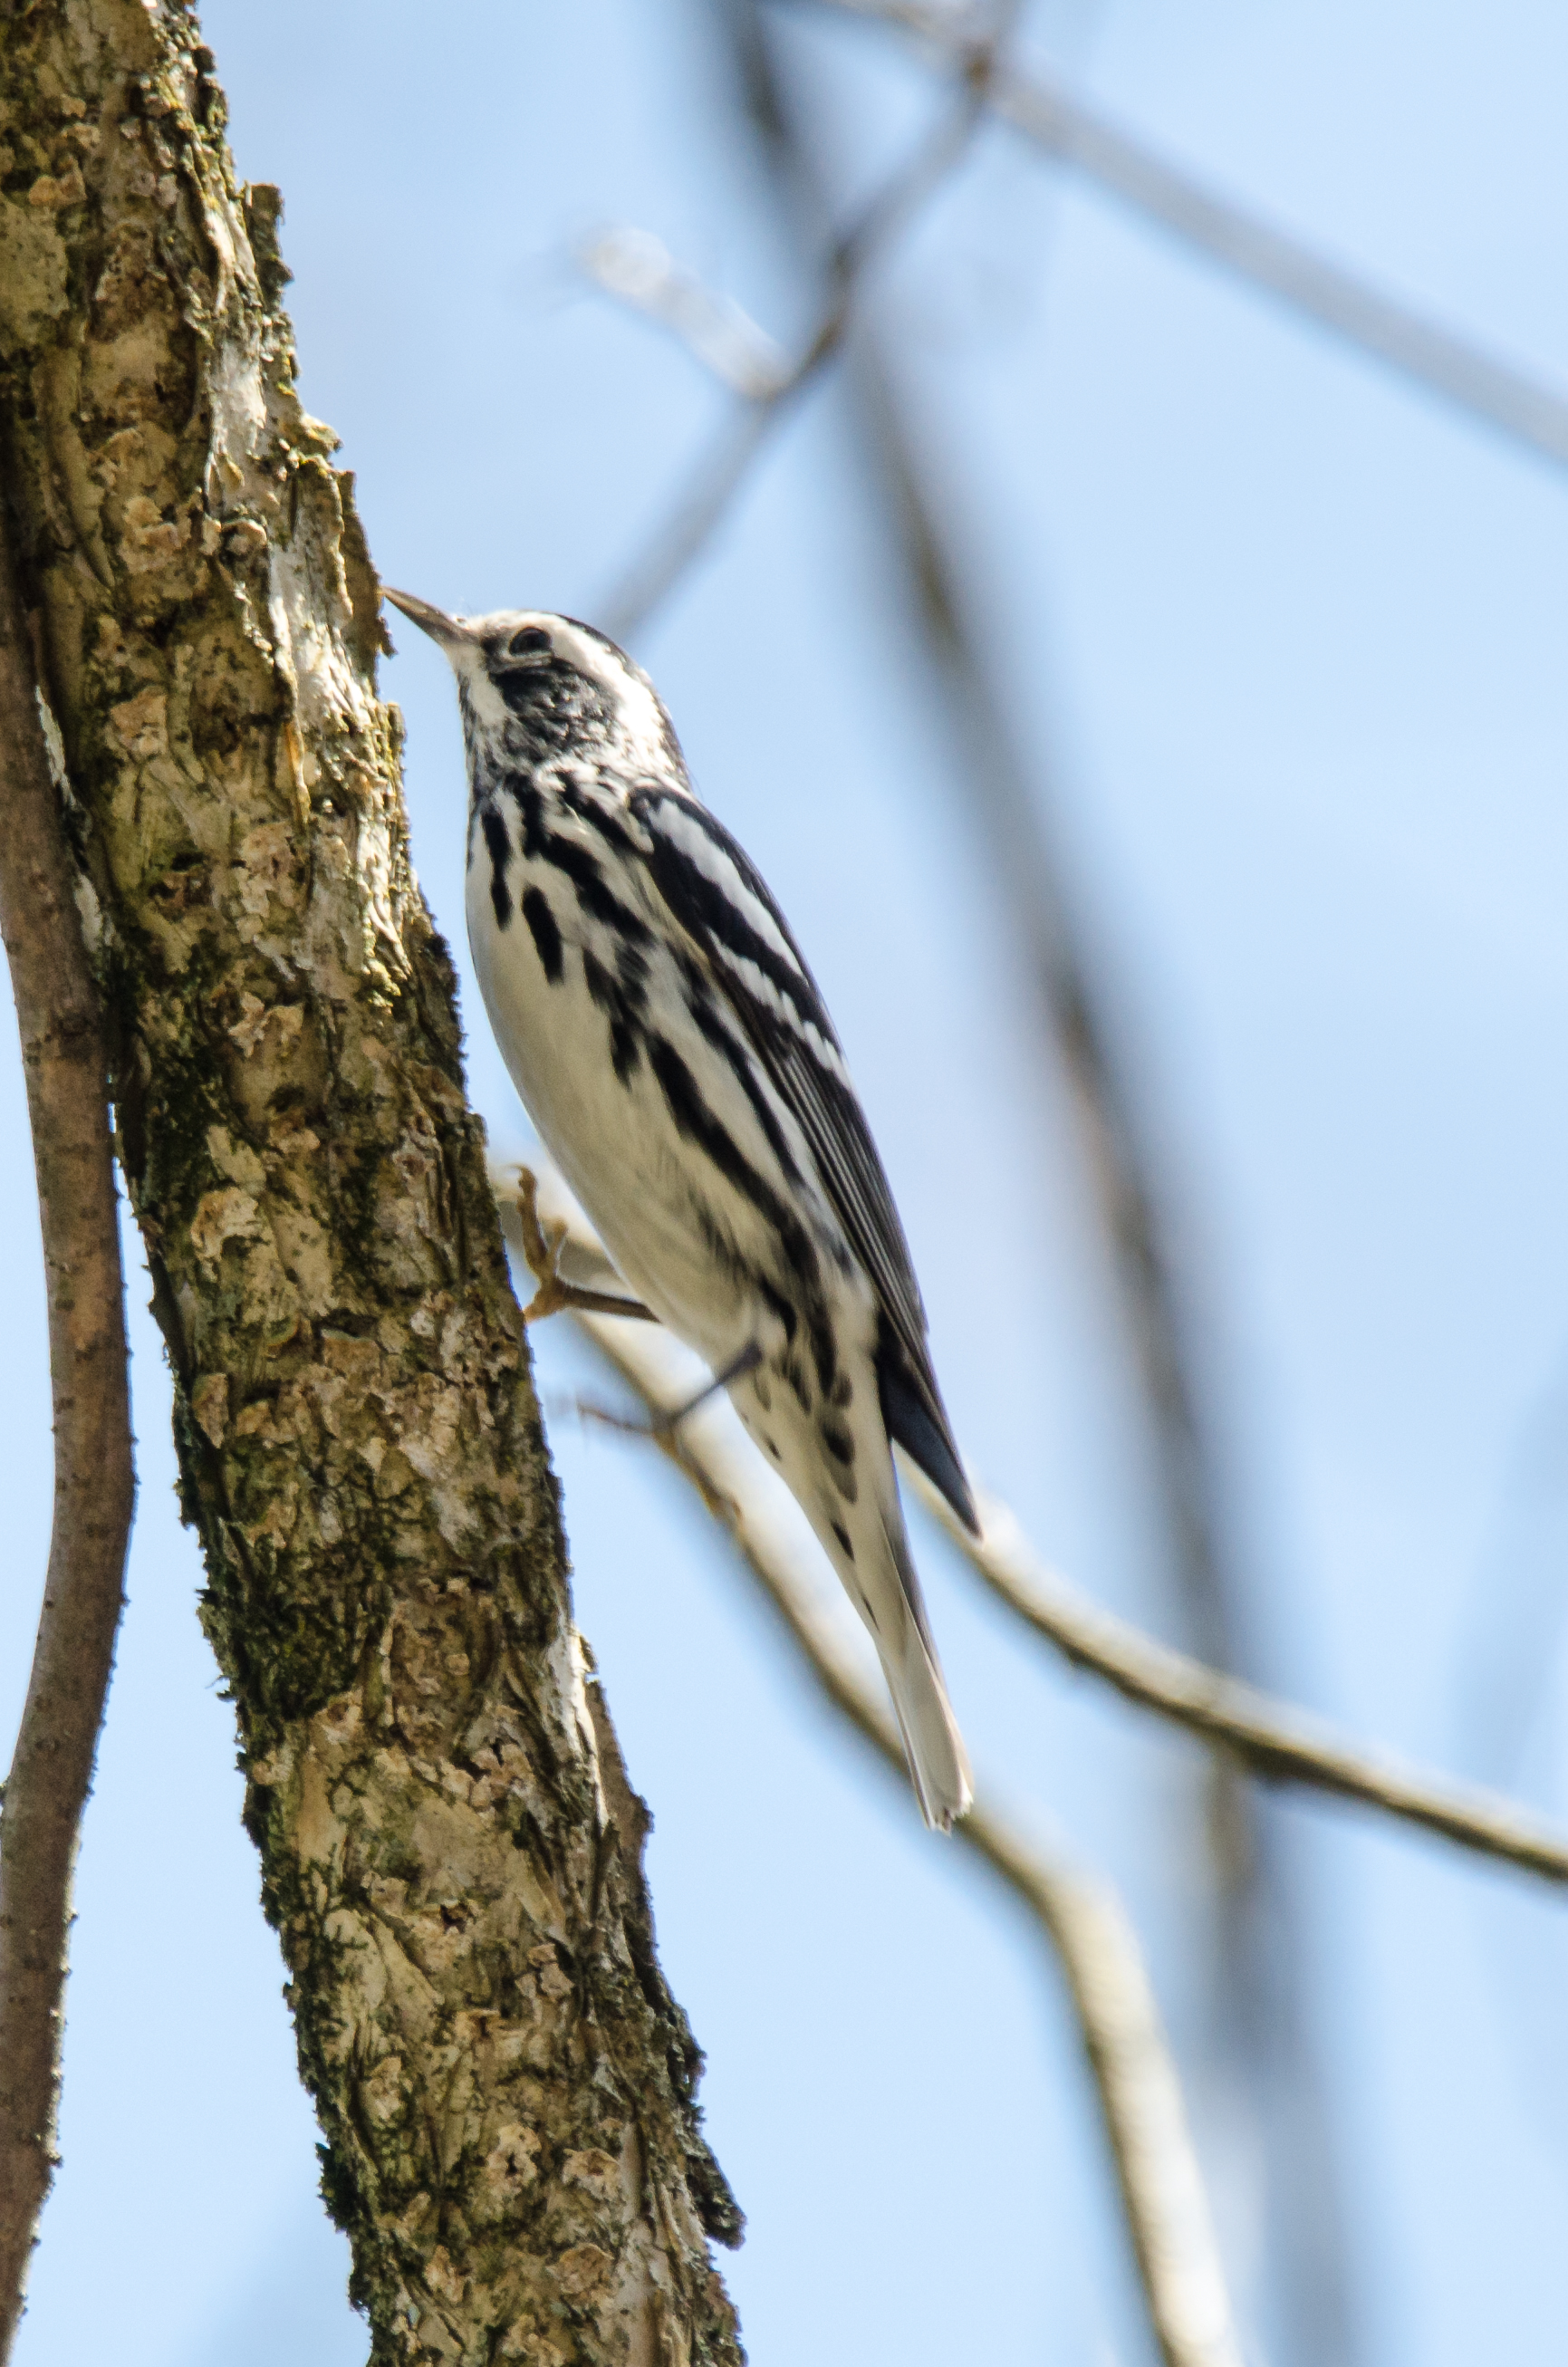 Black-and-White Warbler Nikon D7000 ISO 400 600mm f/8.0 1/640 sec.